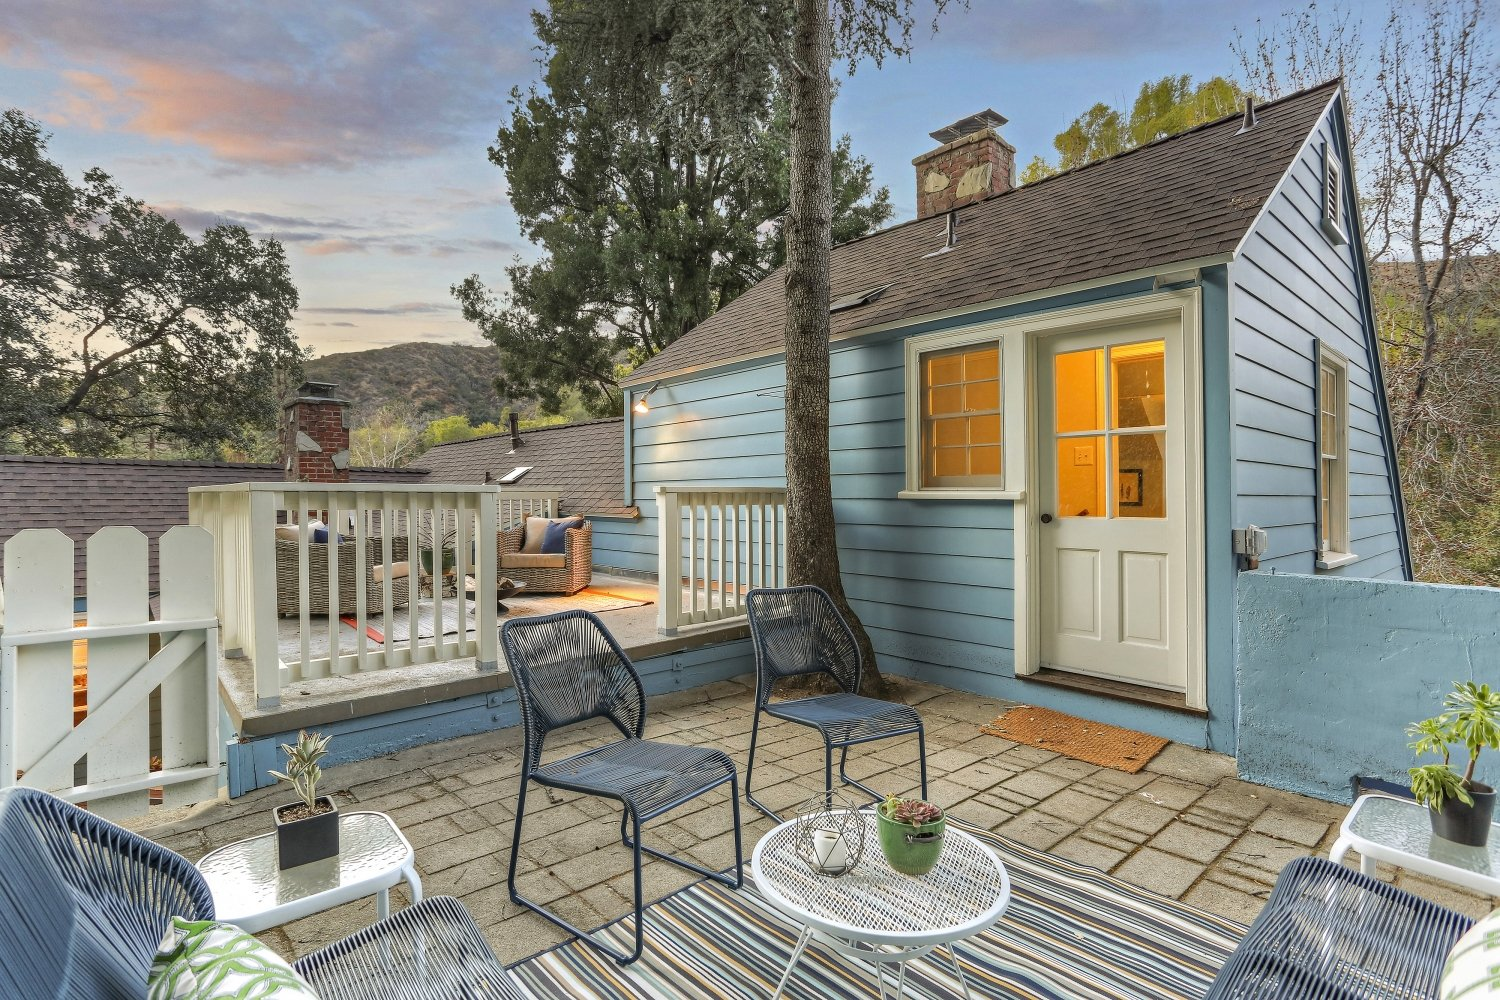 Dutch Cottage for sale. 2310 E Chevy Chase Dr. Glendale CA - Upper two-level patio